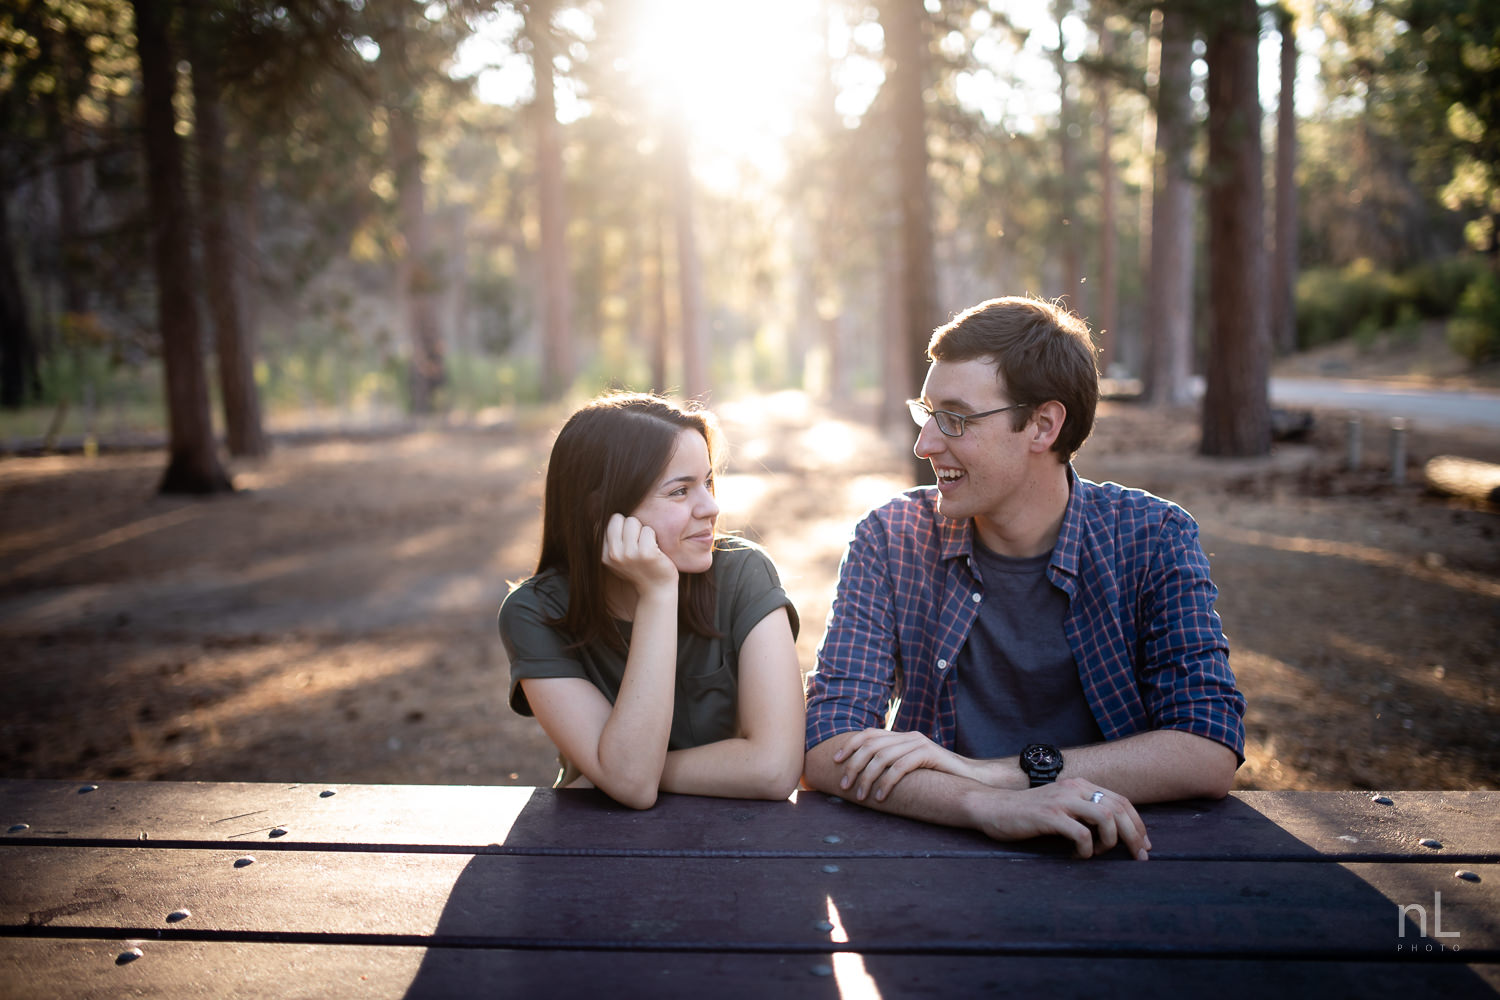 los-angeles-national-forest-engagement-photography-couple-picnic-bench-backlight-trees-sunset